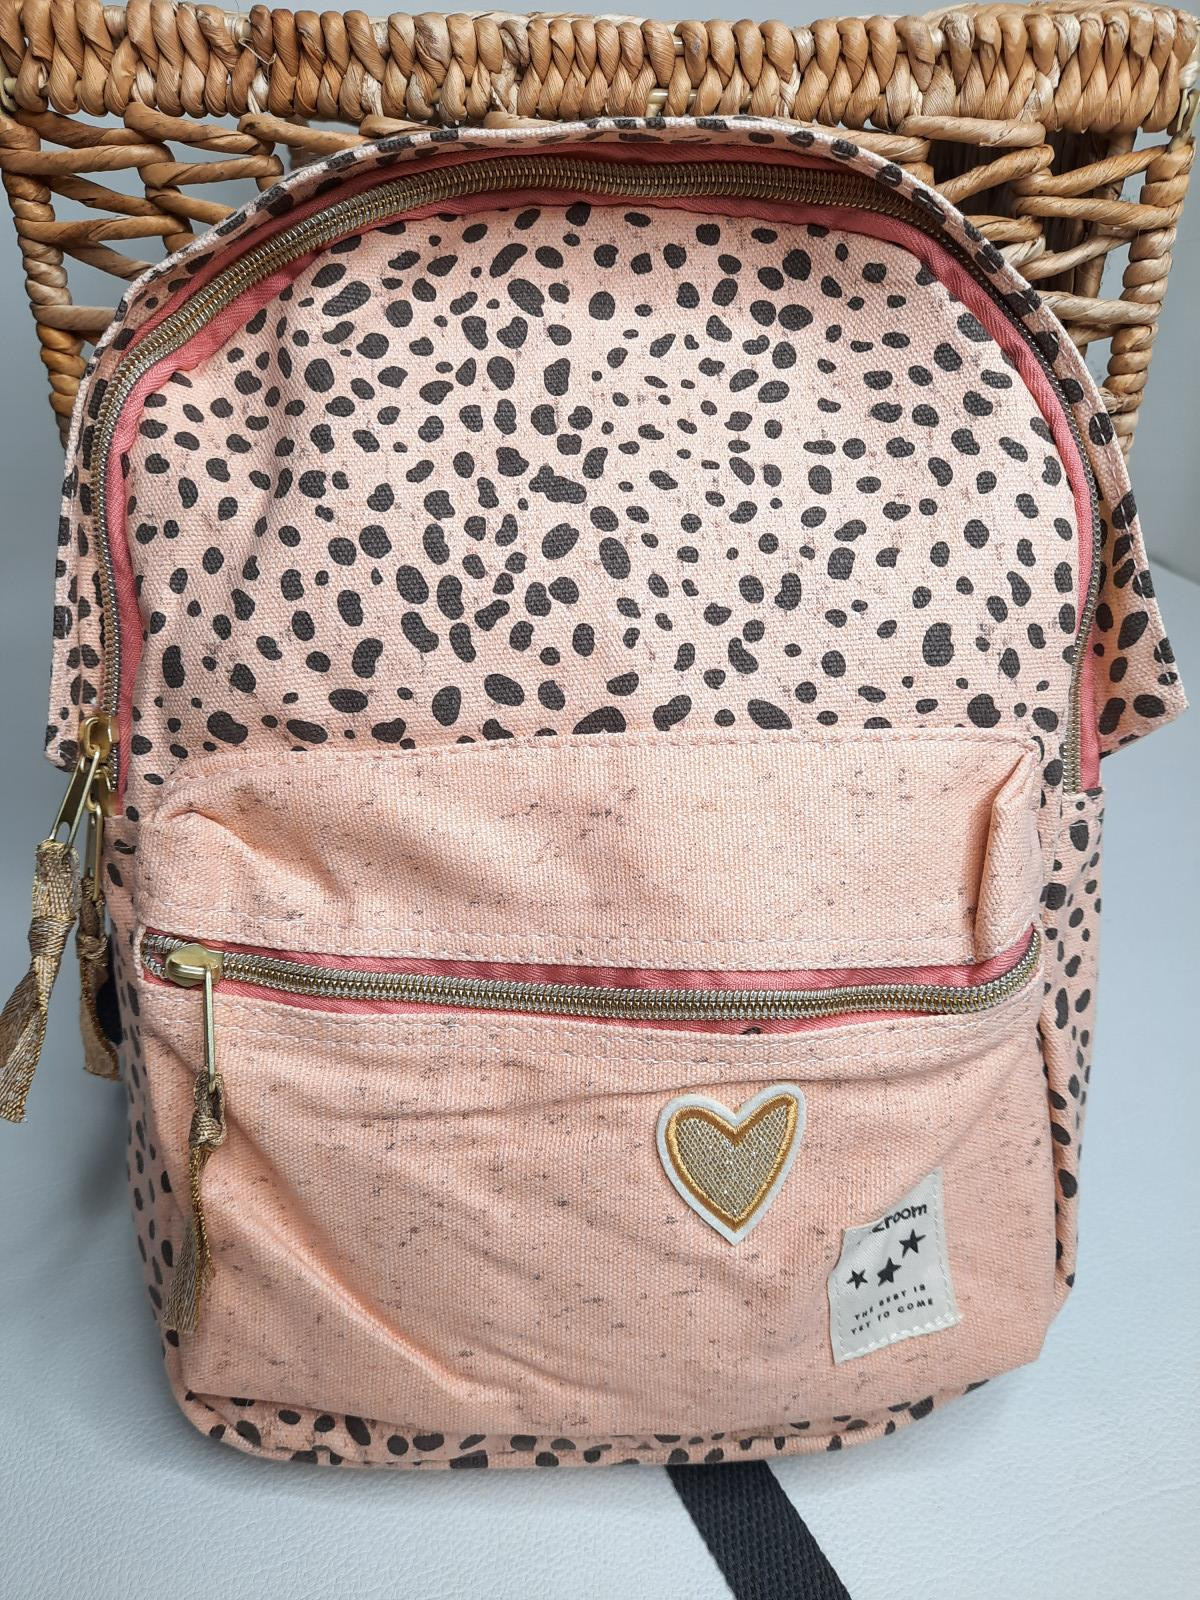 Cartable - photo 20